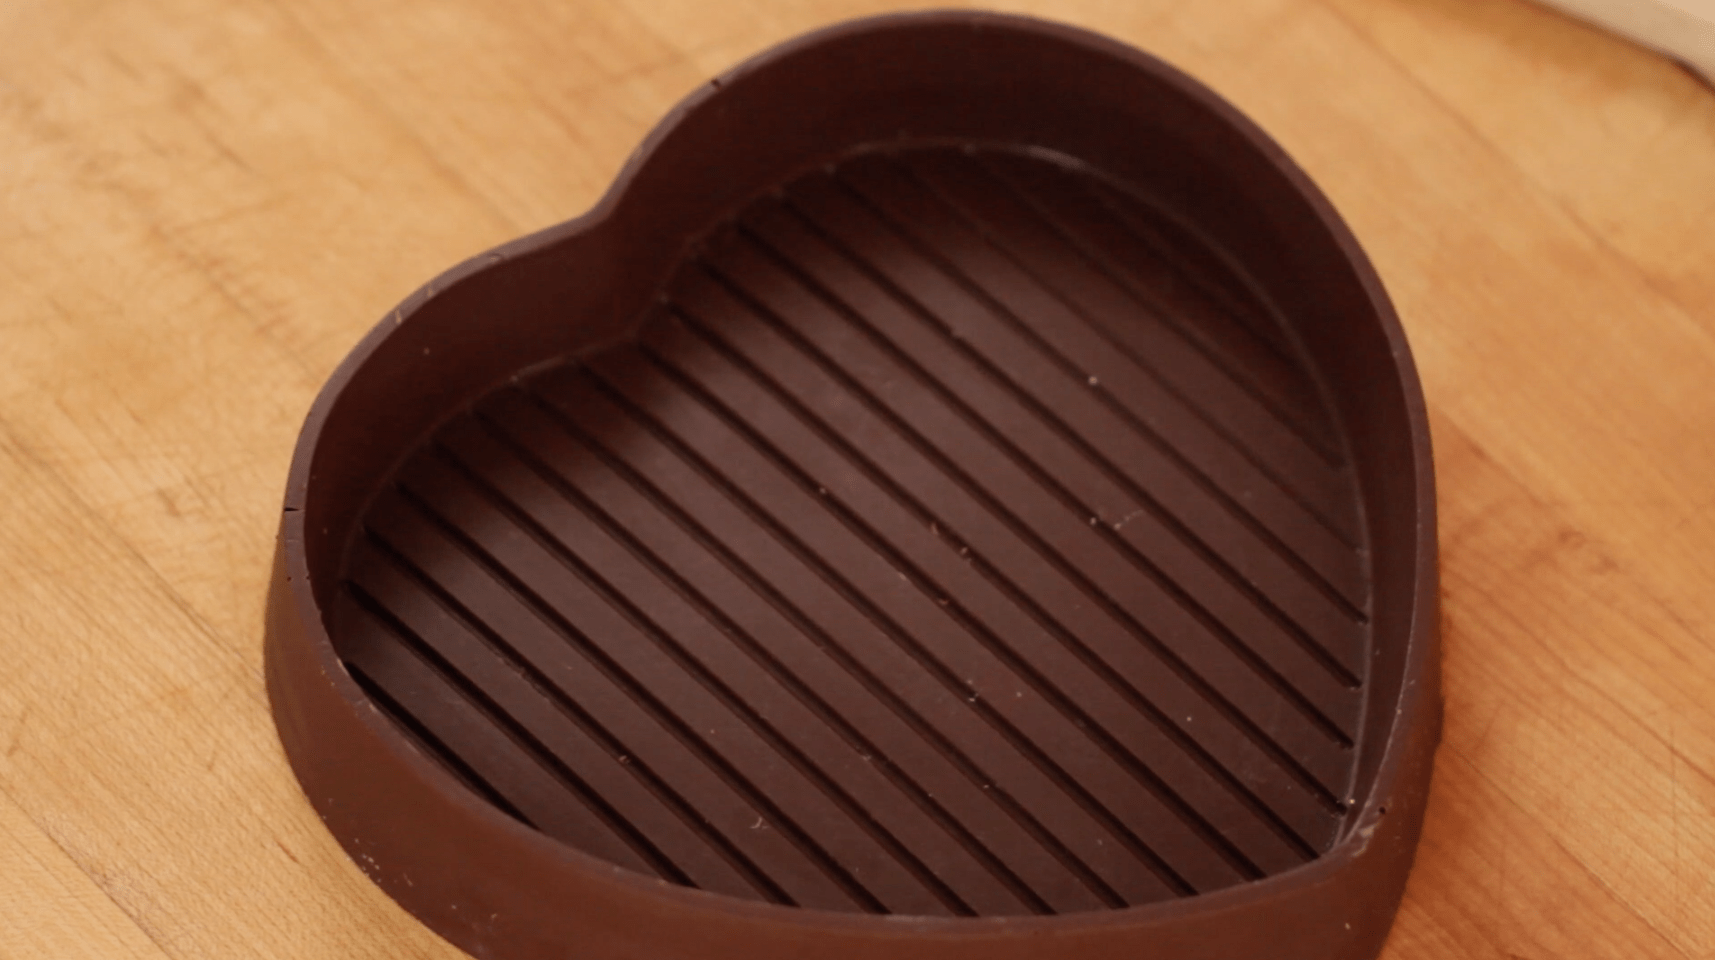 Chocolate Heart Mold Base